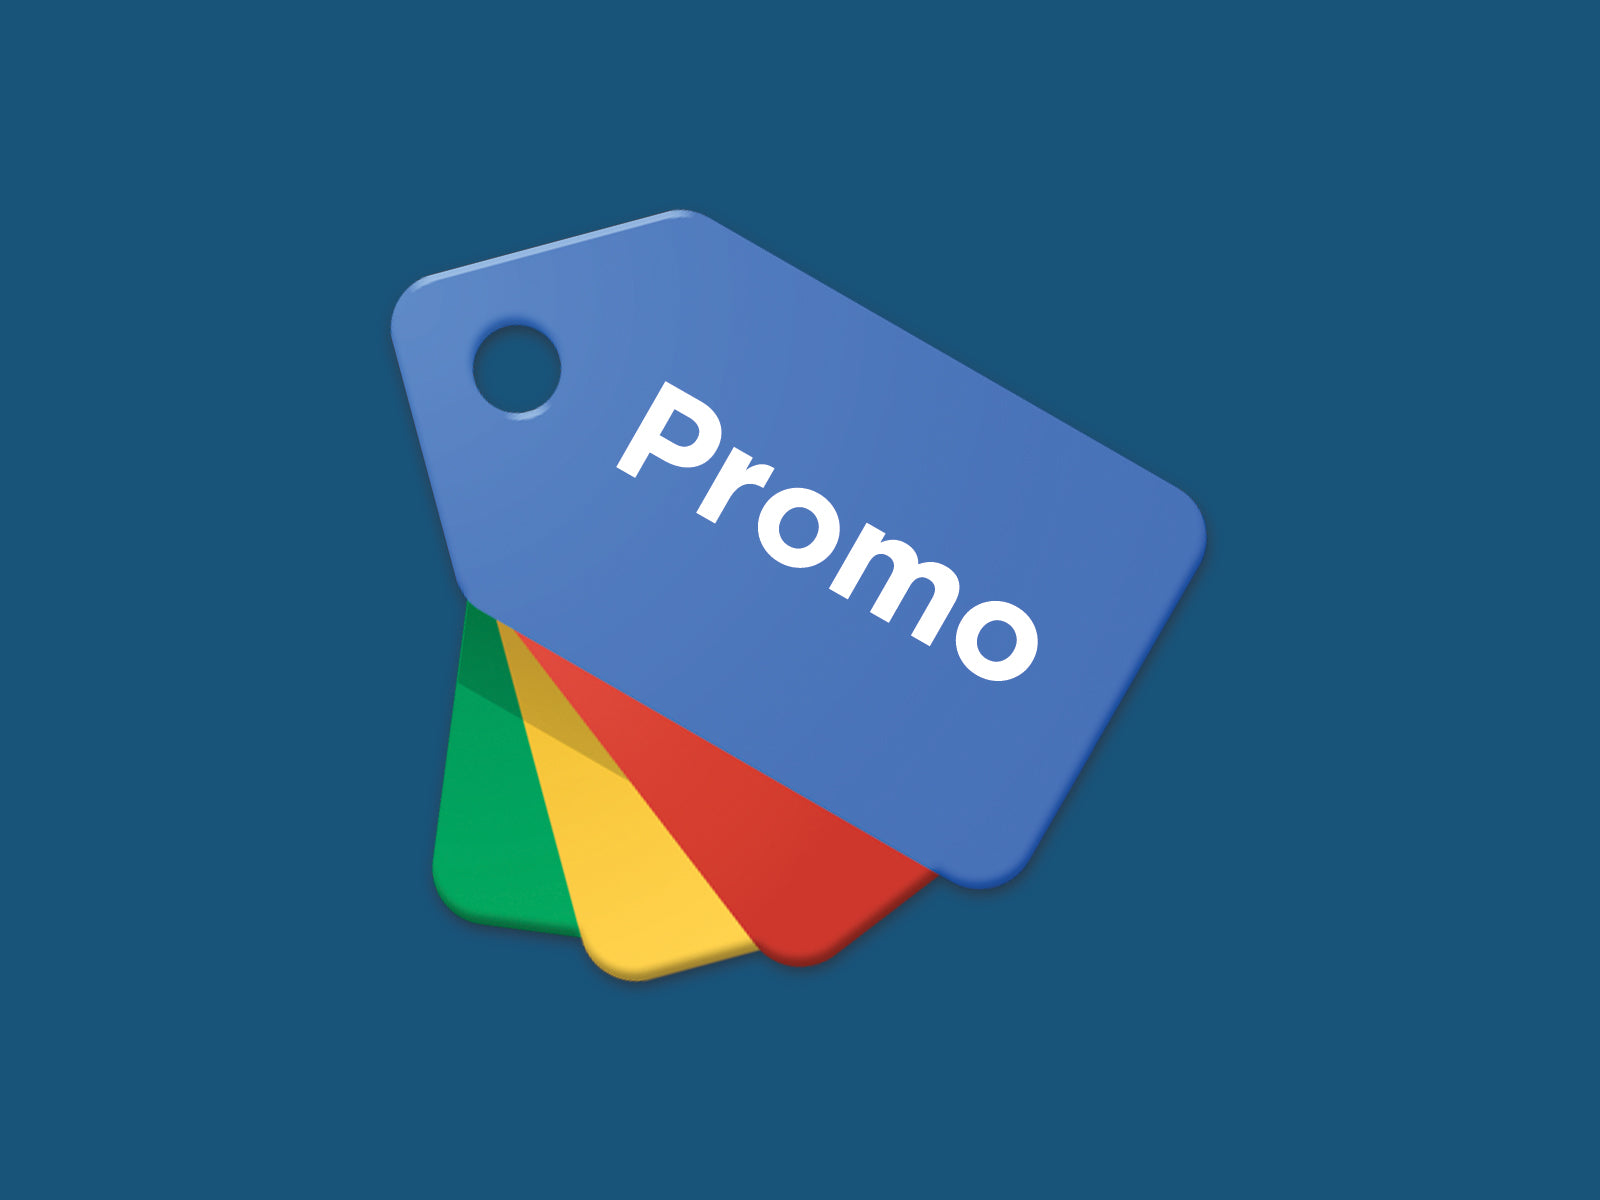 Specific Product Promotions